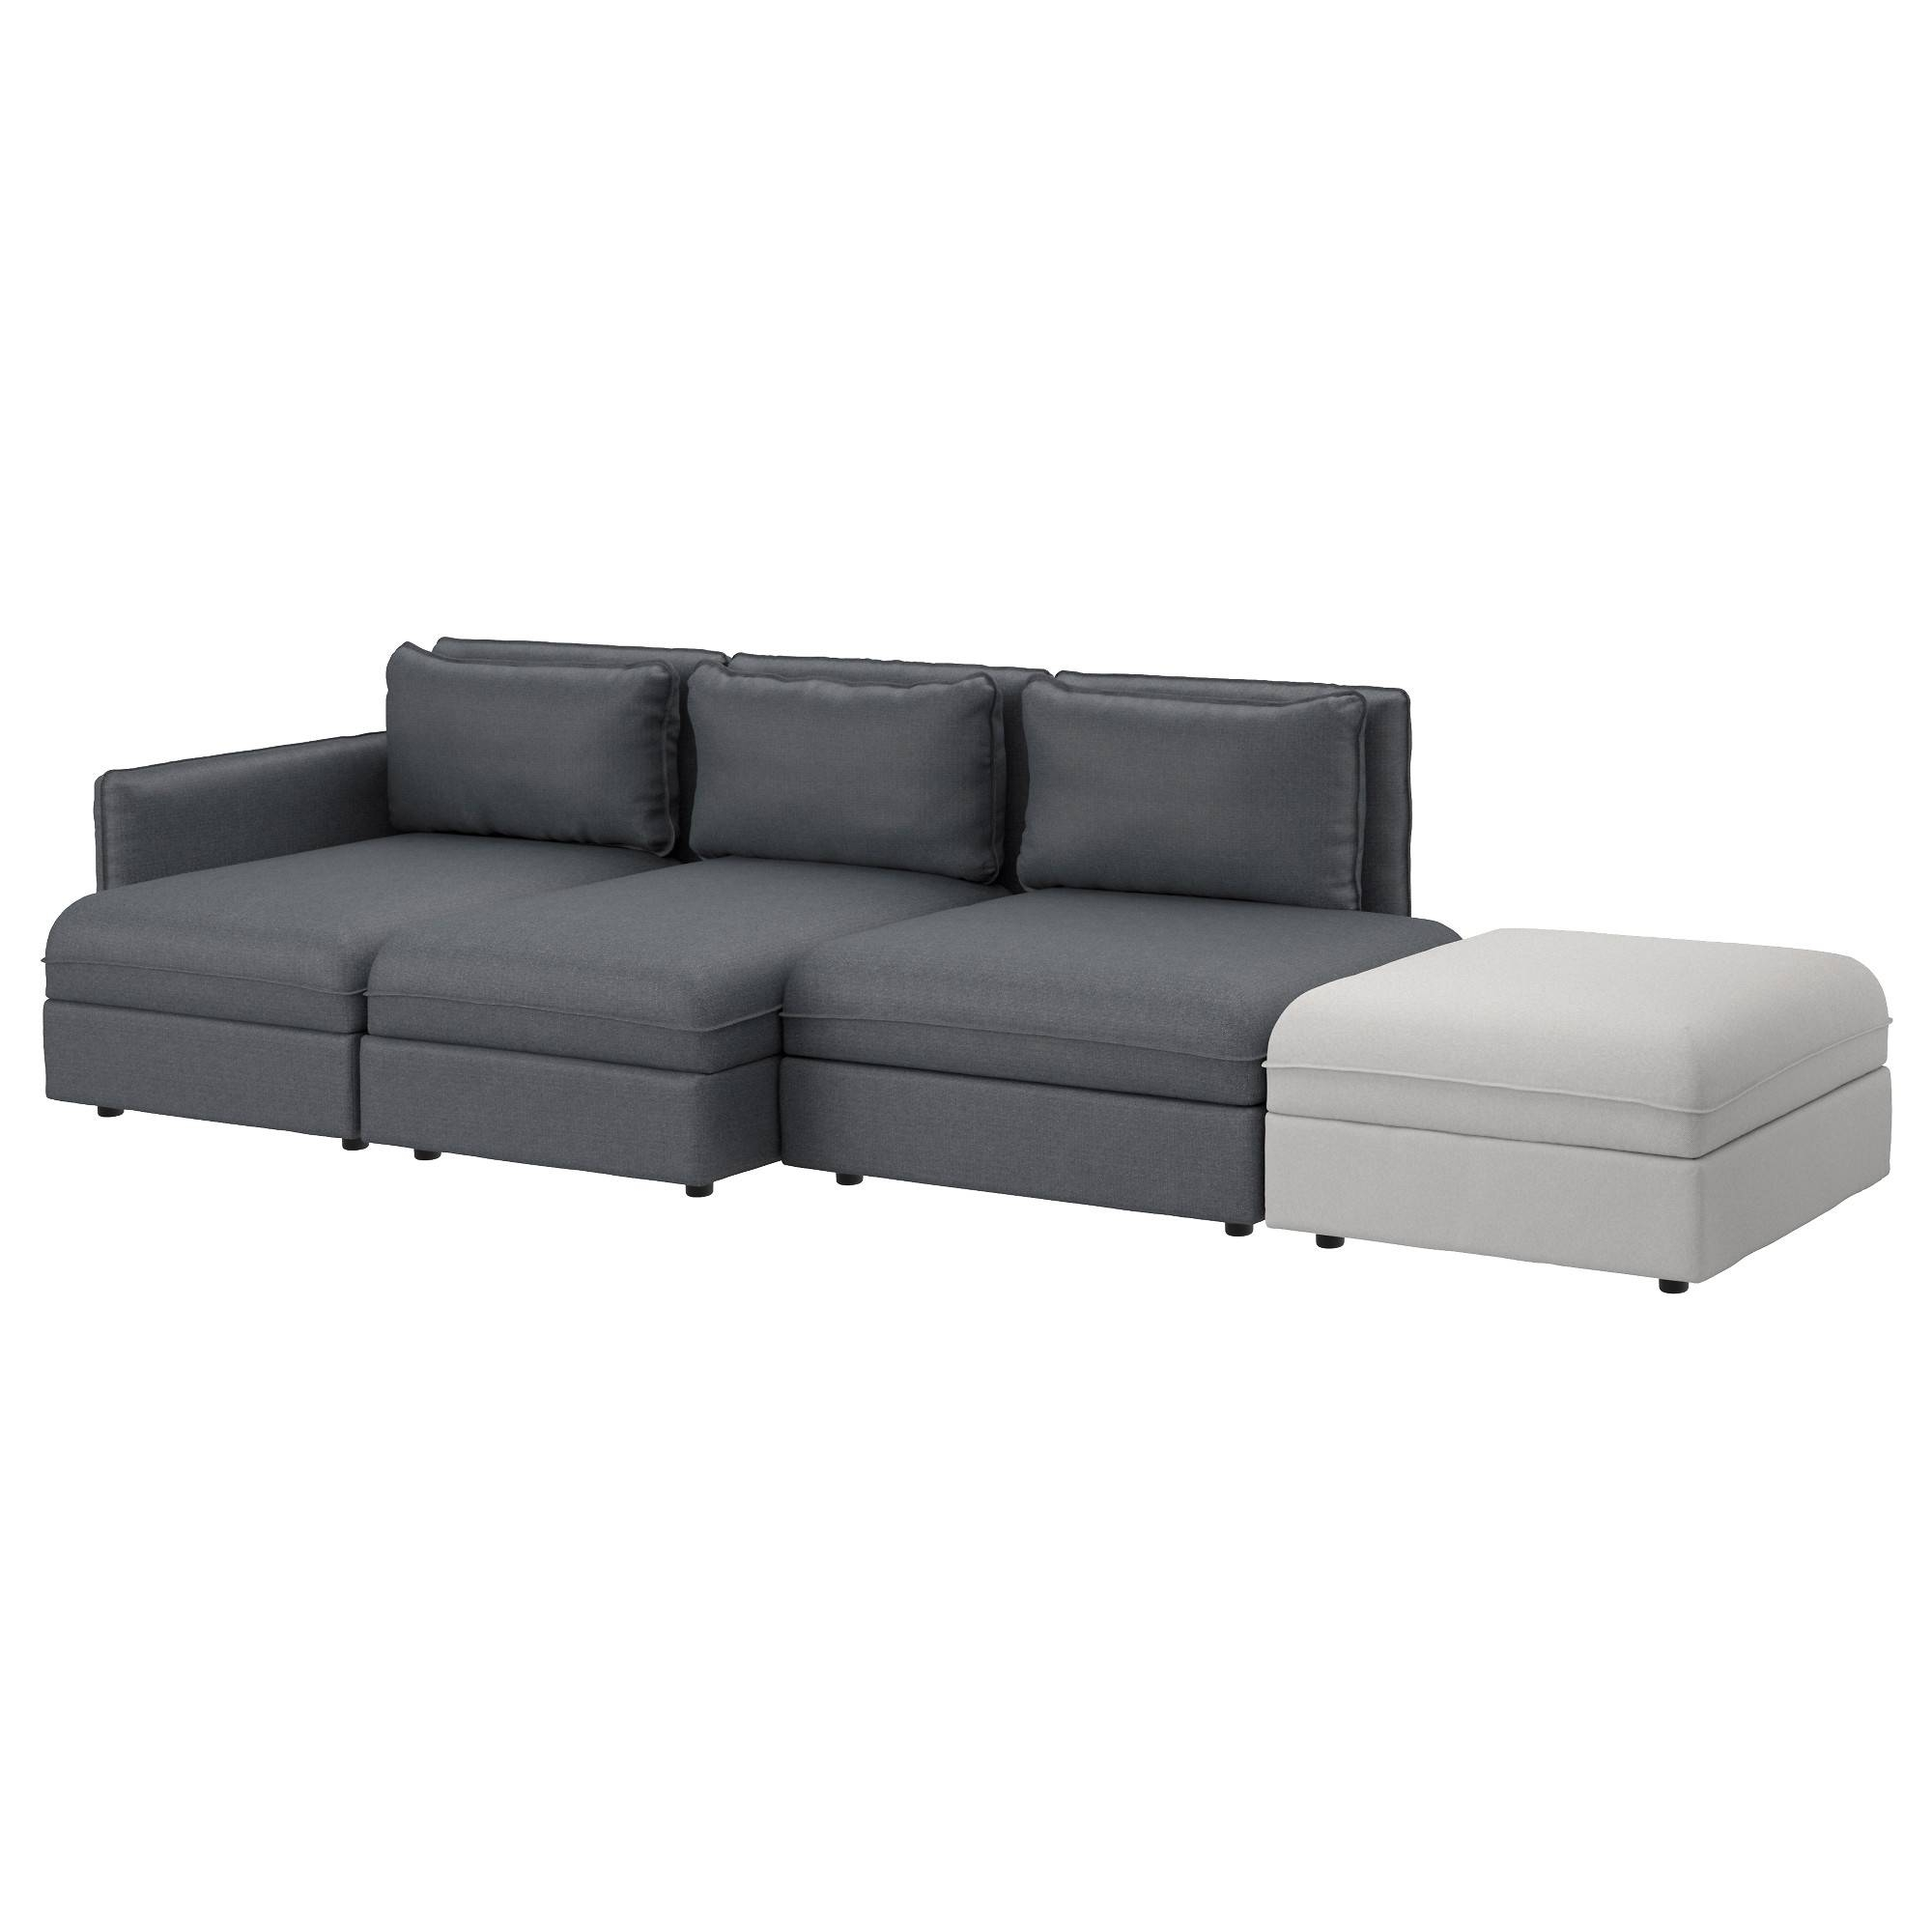 Sectional Sofas & Couches - Ikea with 2 Seat Sectional Sofas (Image 24 of 30)